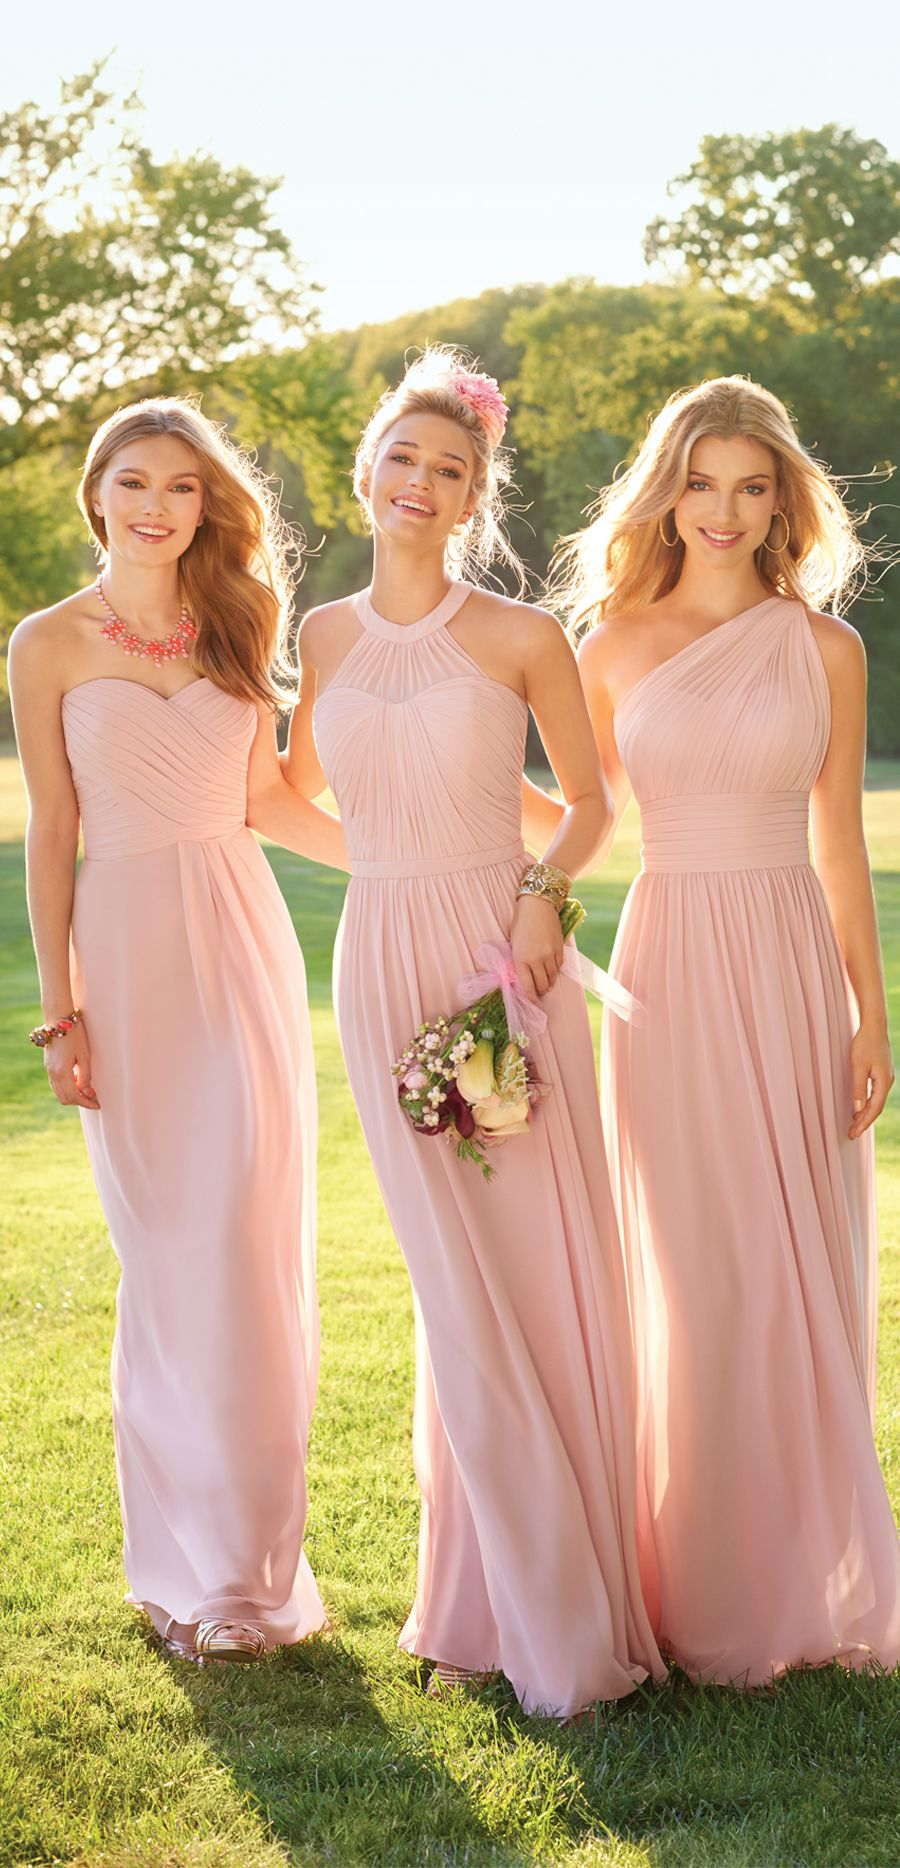 One Shoulder Illusion Bridesmaid Dress Light Pink Bridesmaid Dresses Pink Bridesmaid Dresses Long Bridesmaid Dresses